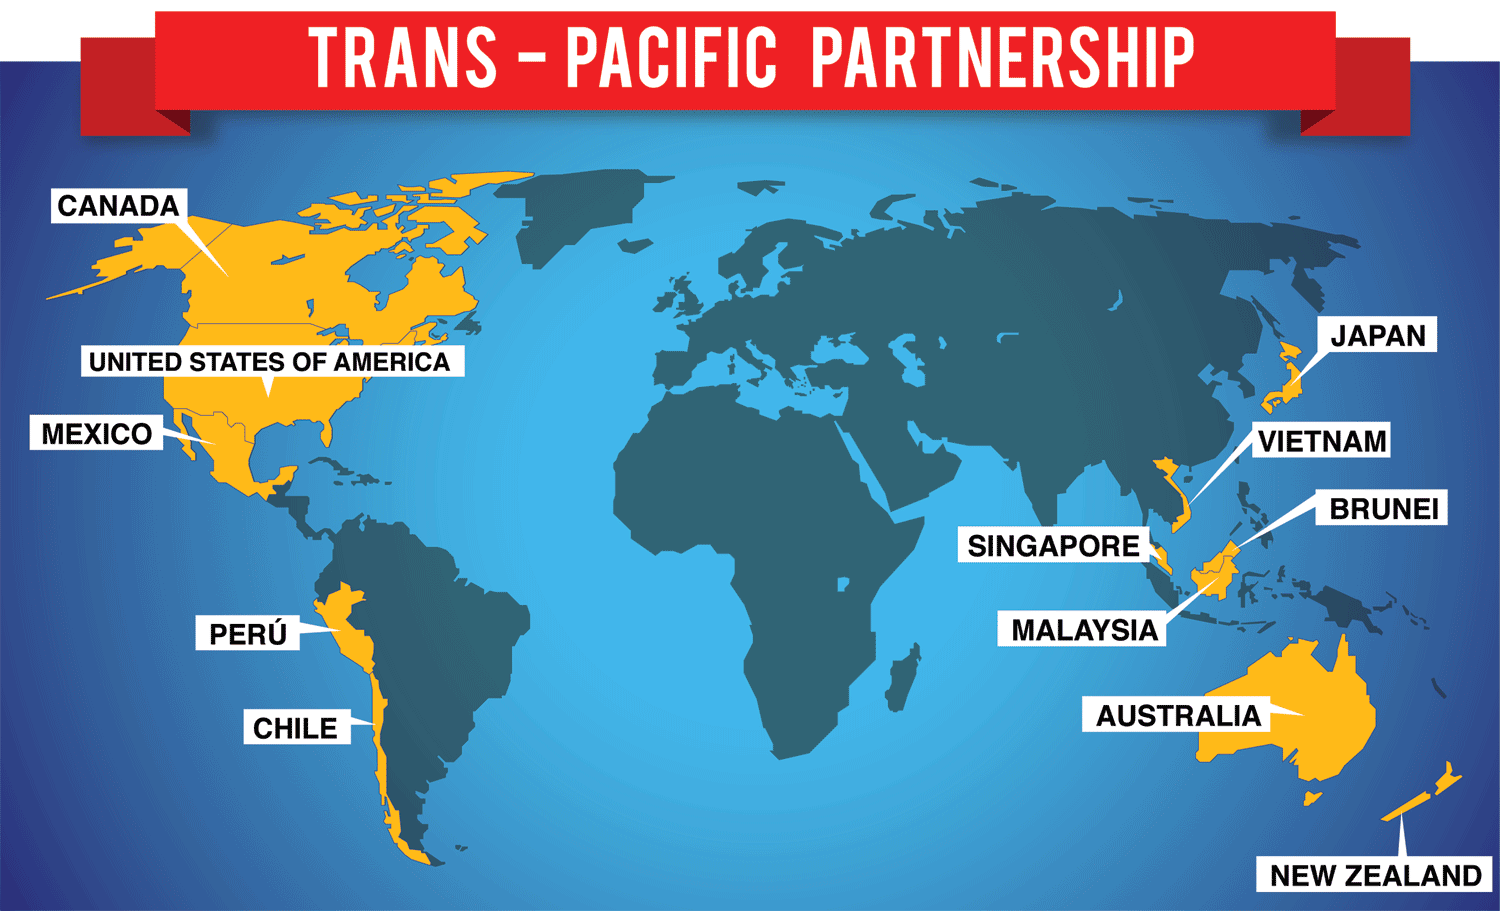 Trans Pacific Partnership - map of involved countries - AG News